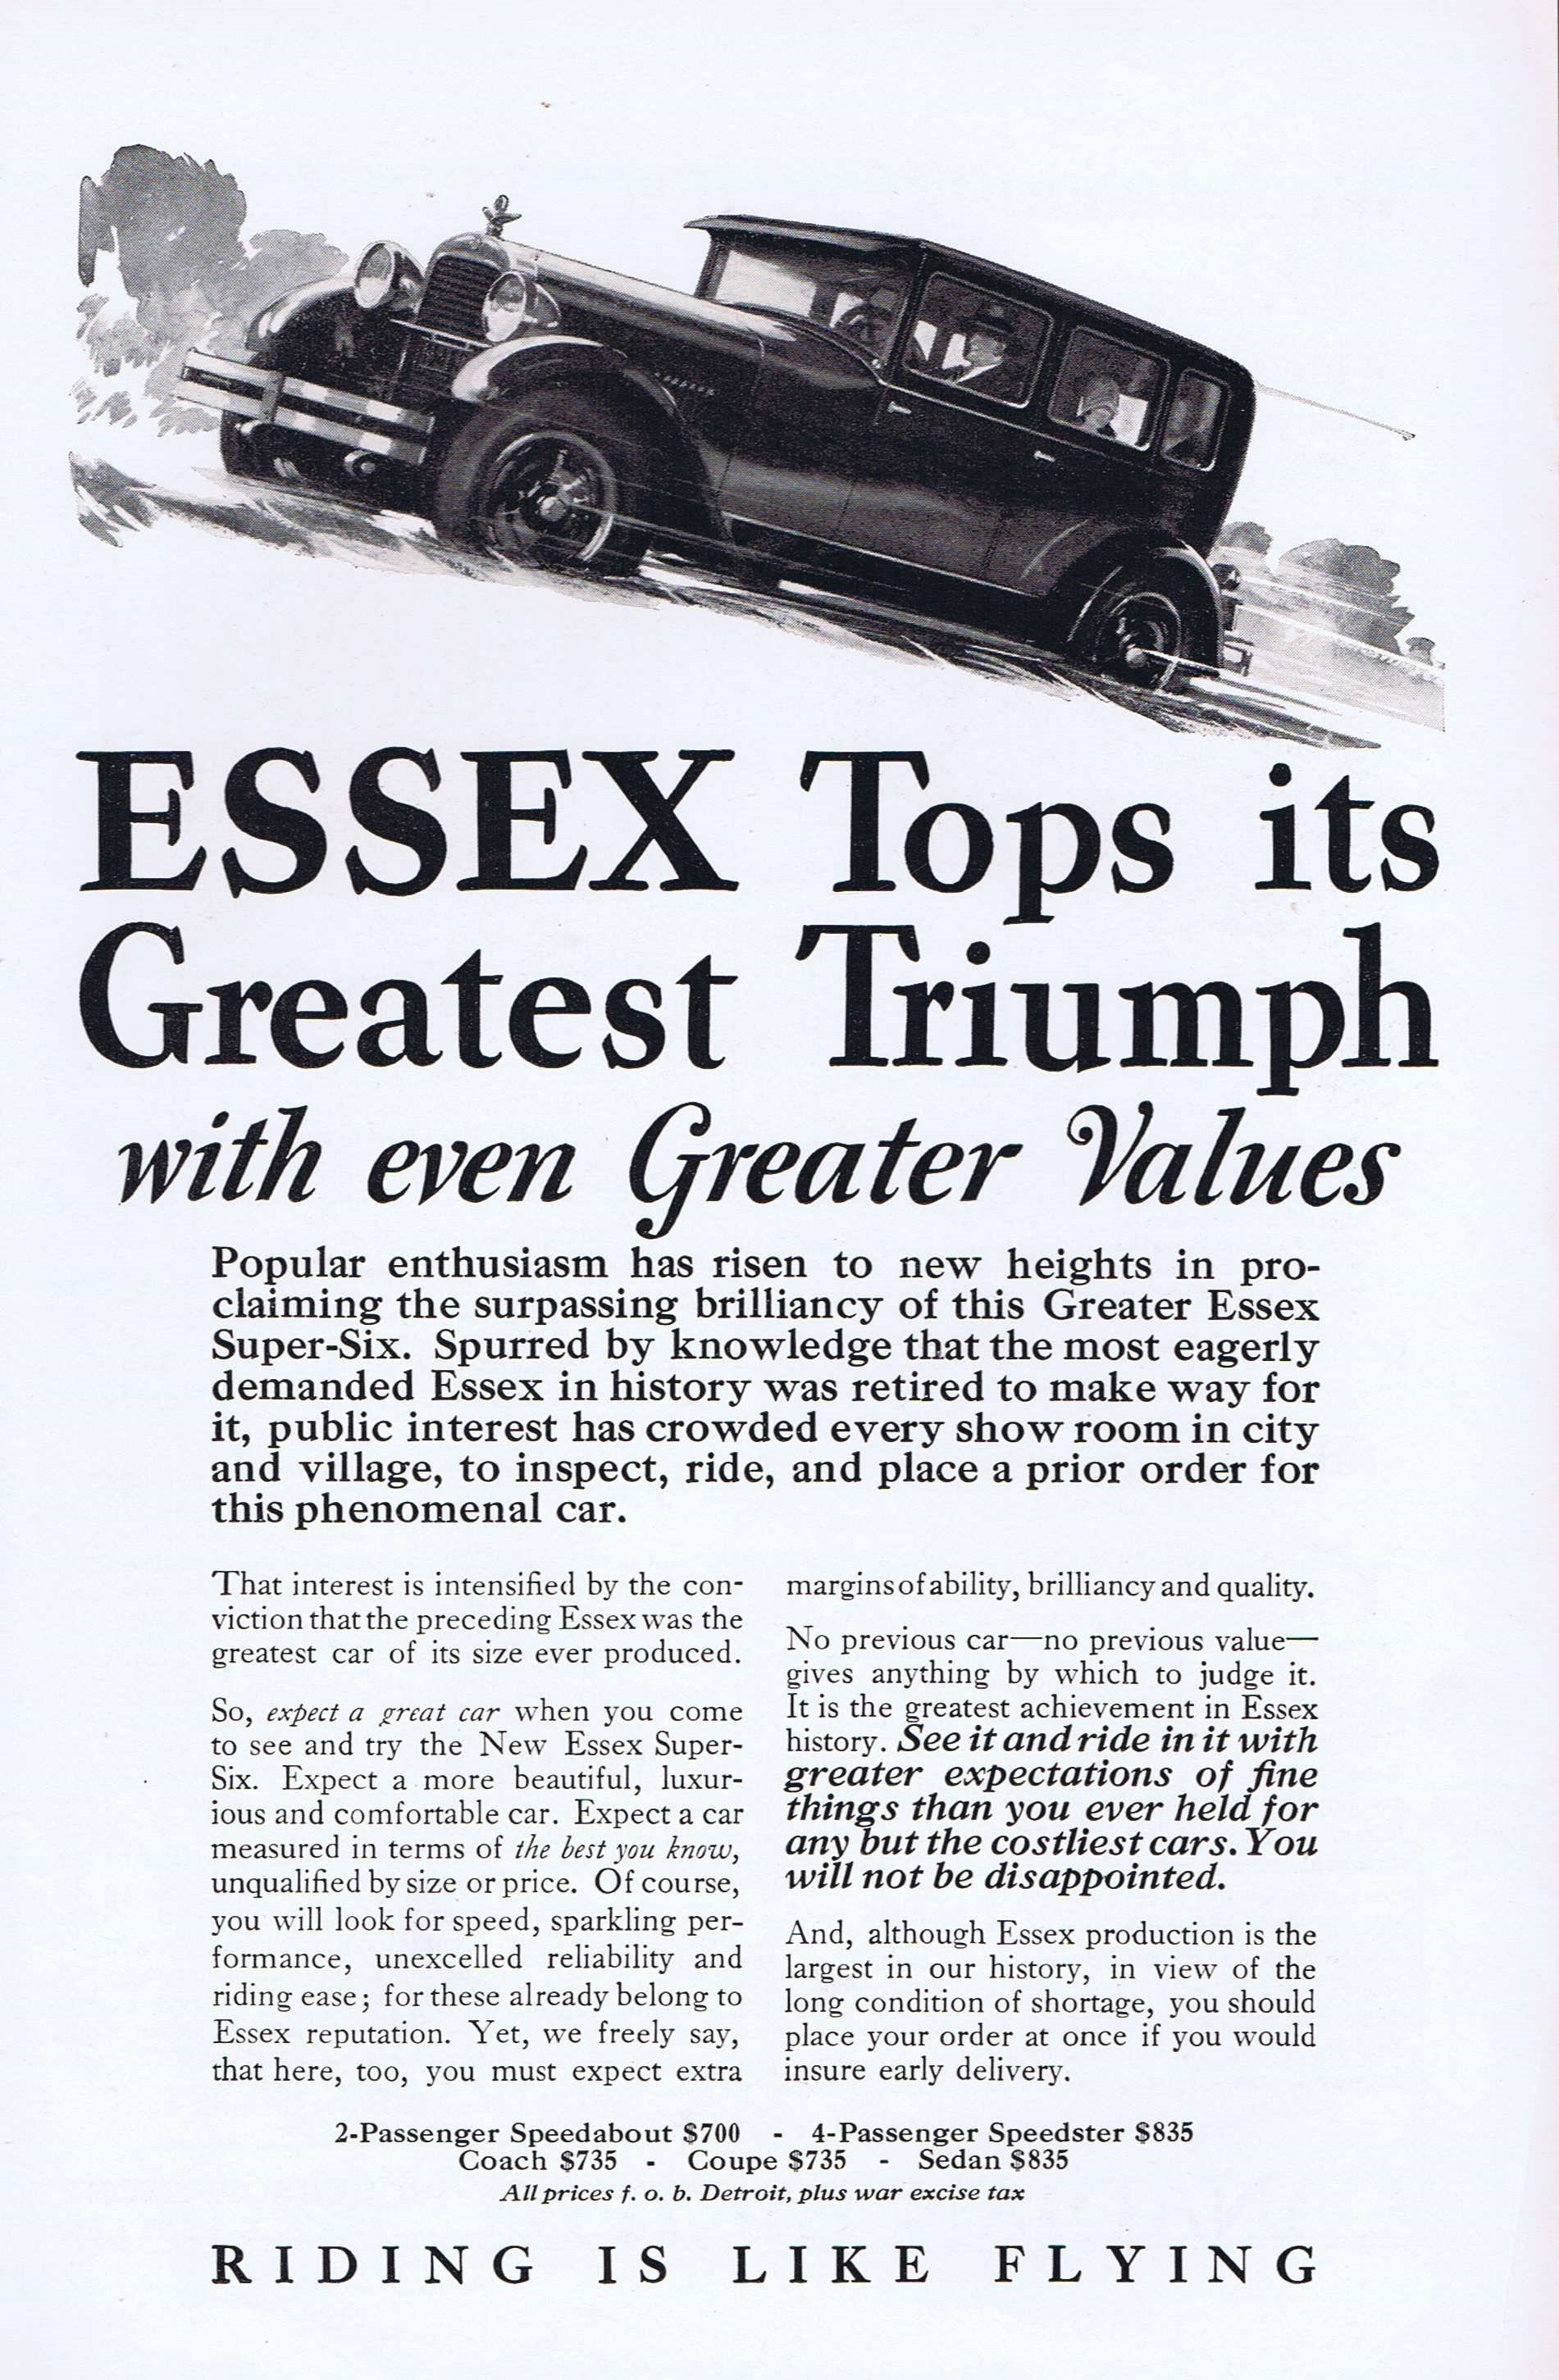 Old Car Values >> Old Essex Sedan Car In 1927 Advertisement Riding Is Like Flying